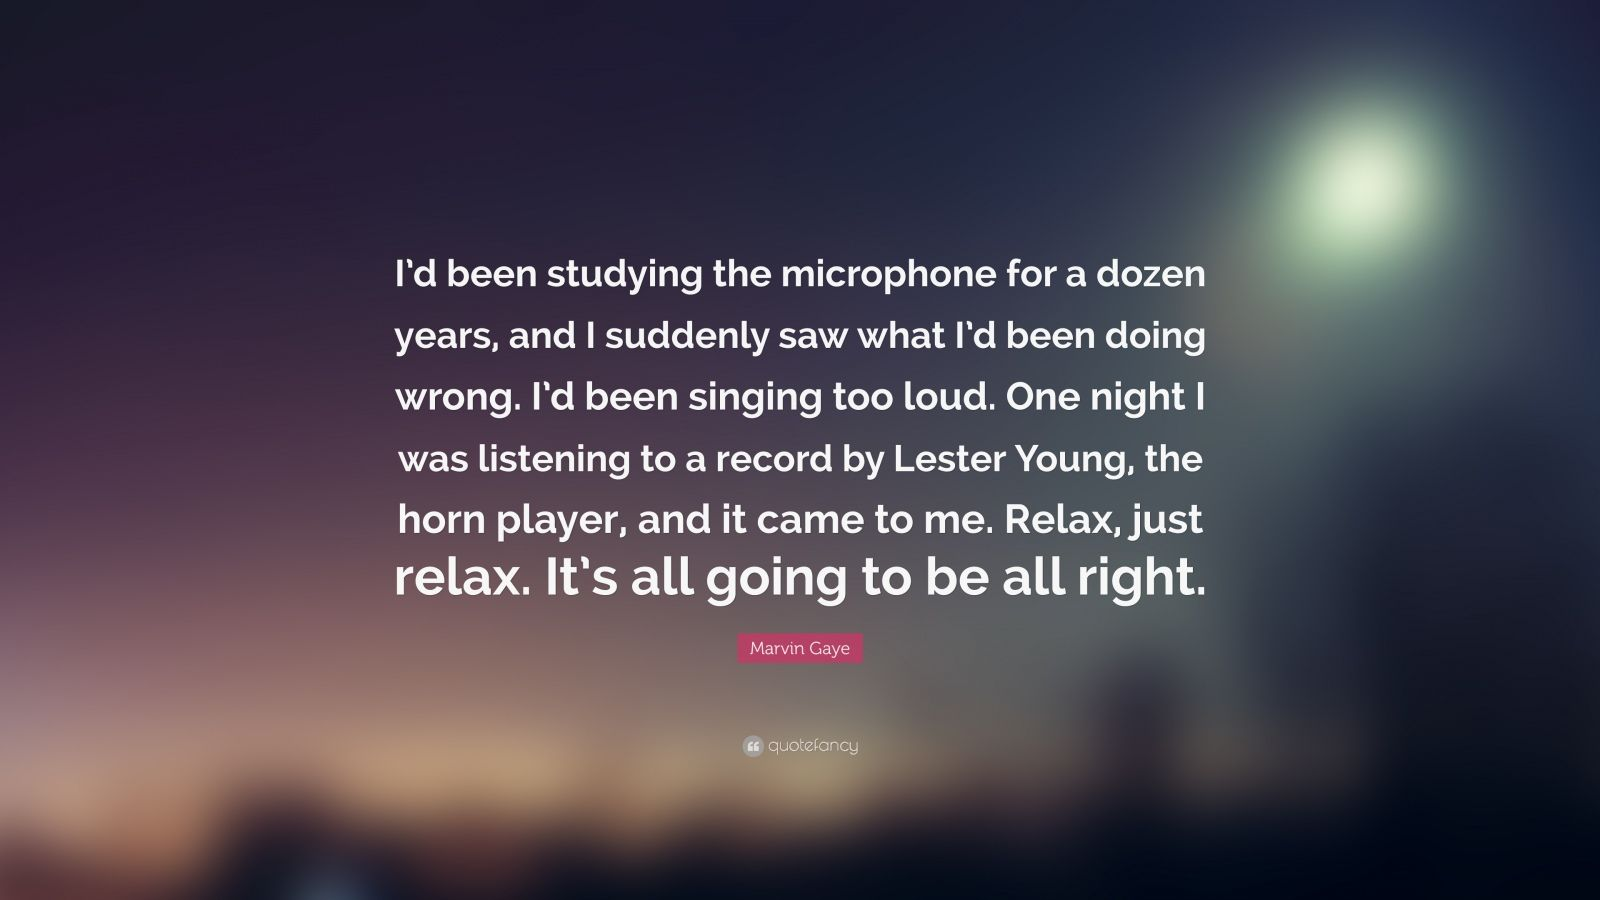 "Marvin Gaye Quote: ""I'd been studying the microphone for a dozen years, and I suddenly saw what I'd been doing wrong. I'd been singing too loud. One night I was listening to a record by Lester Young, the horn player, and it came to me. Relax, just relax. It's all going to be all right."""